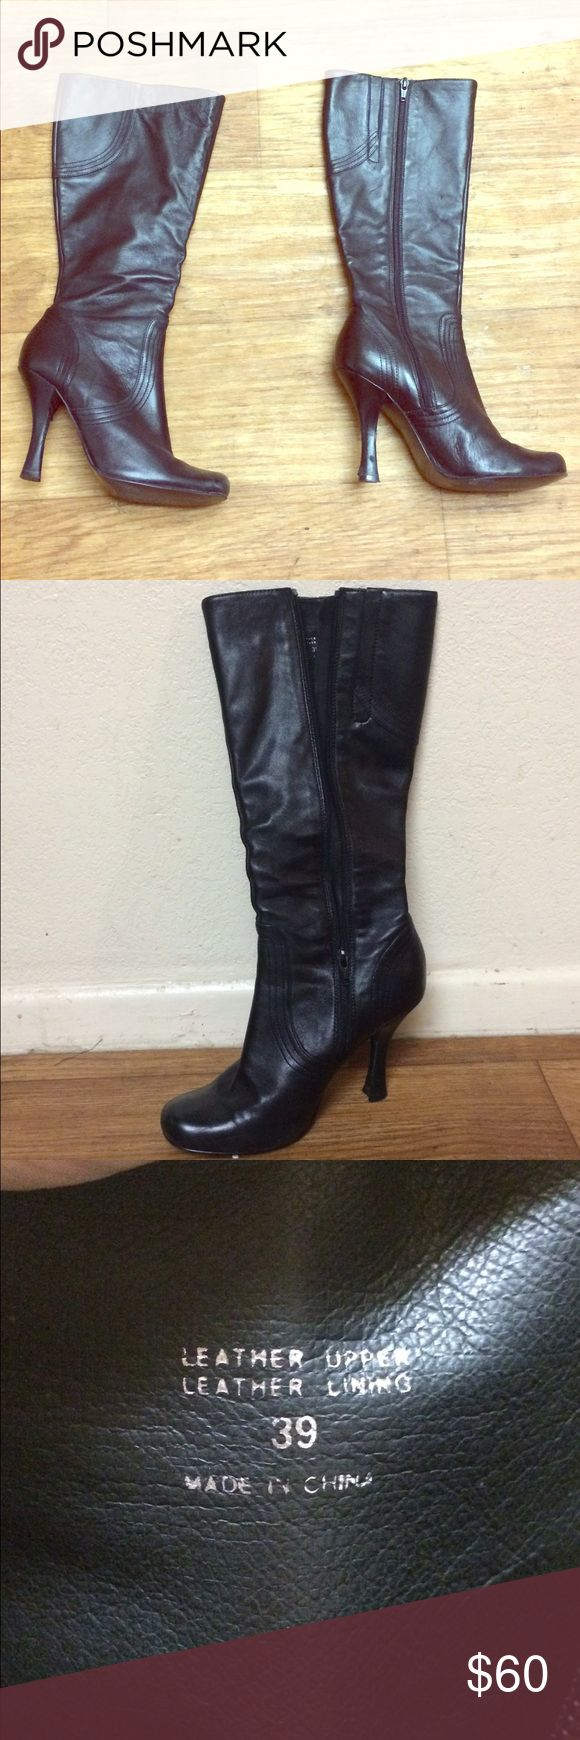 ALDO Boots - Calf Length - Leather Black leather ALDO boots. Chic and badass at the same time! Size 39 ( ~ size 8.5 according to ALDO, ~ size 9 according to Poshmark). Aldo Shoes Heeled Boots